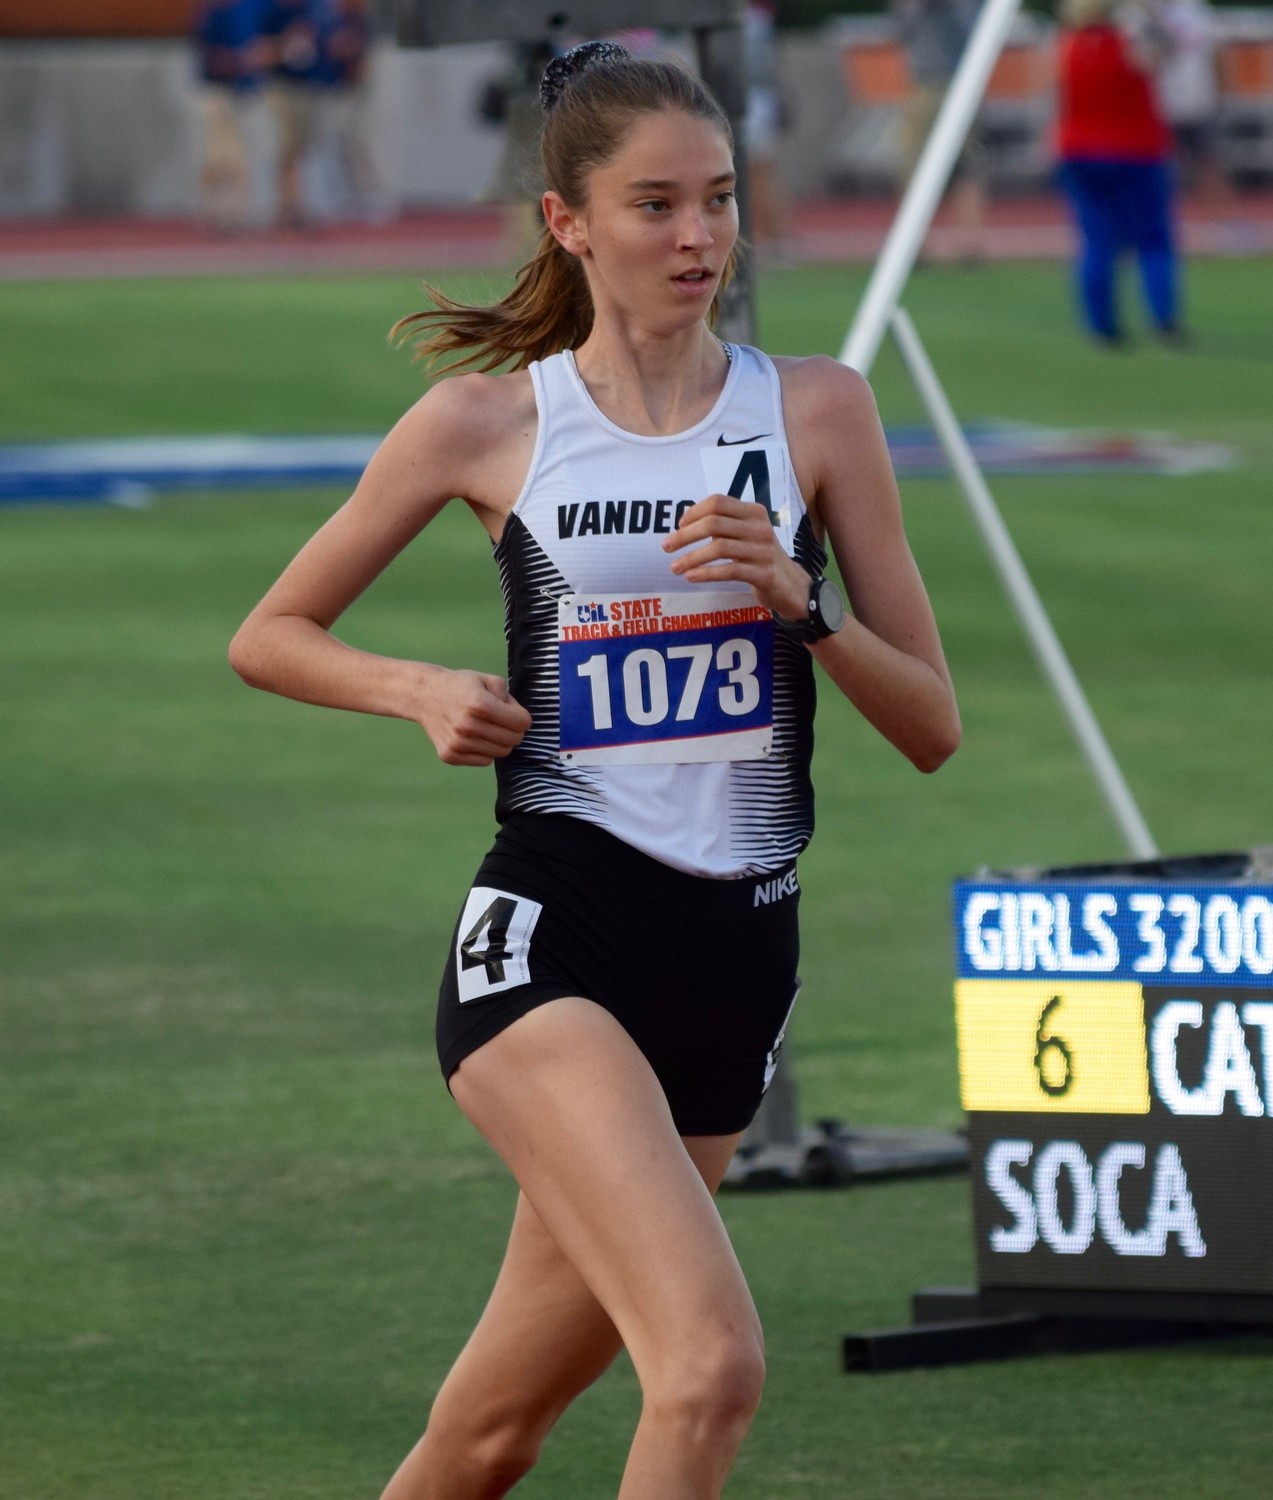 Vandegrift's Jordan Mathis finished ninth with a time of 11:18.44 in the 3200-meter run and ran 1600 meters in 5:05.45, good for seventh place at the State Track & Field meet.